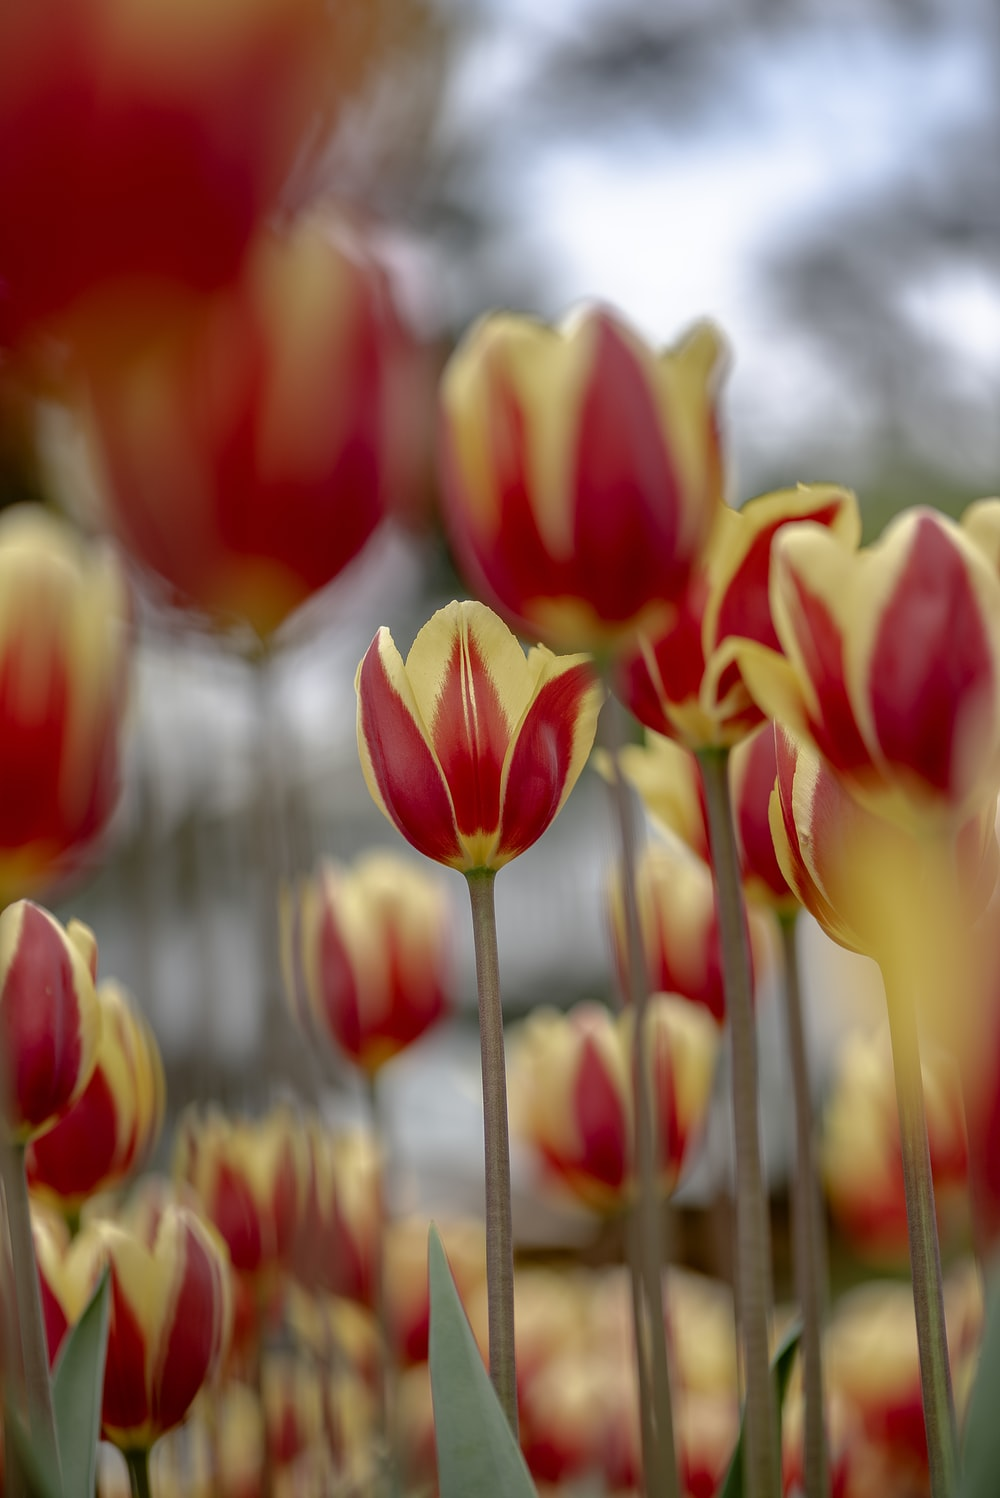 red-and-yellow petaled flowers